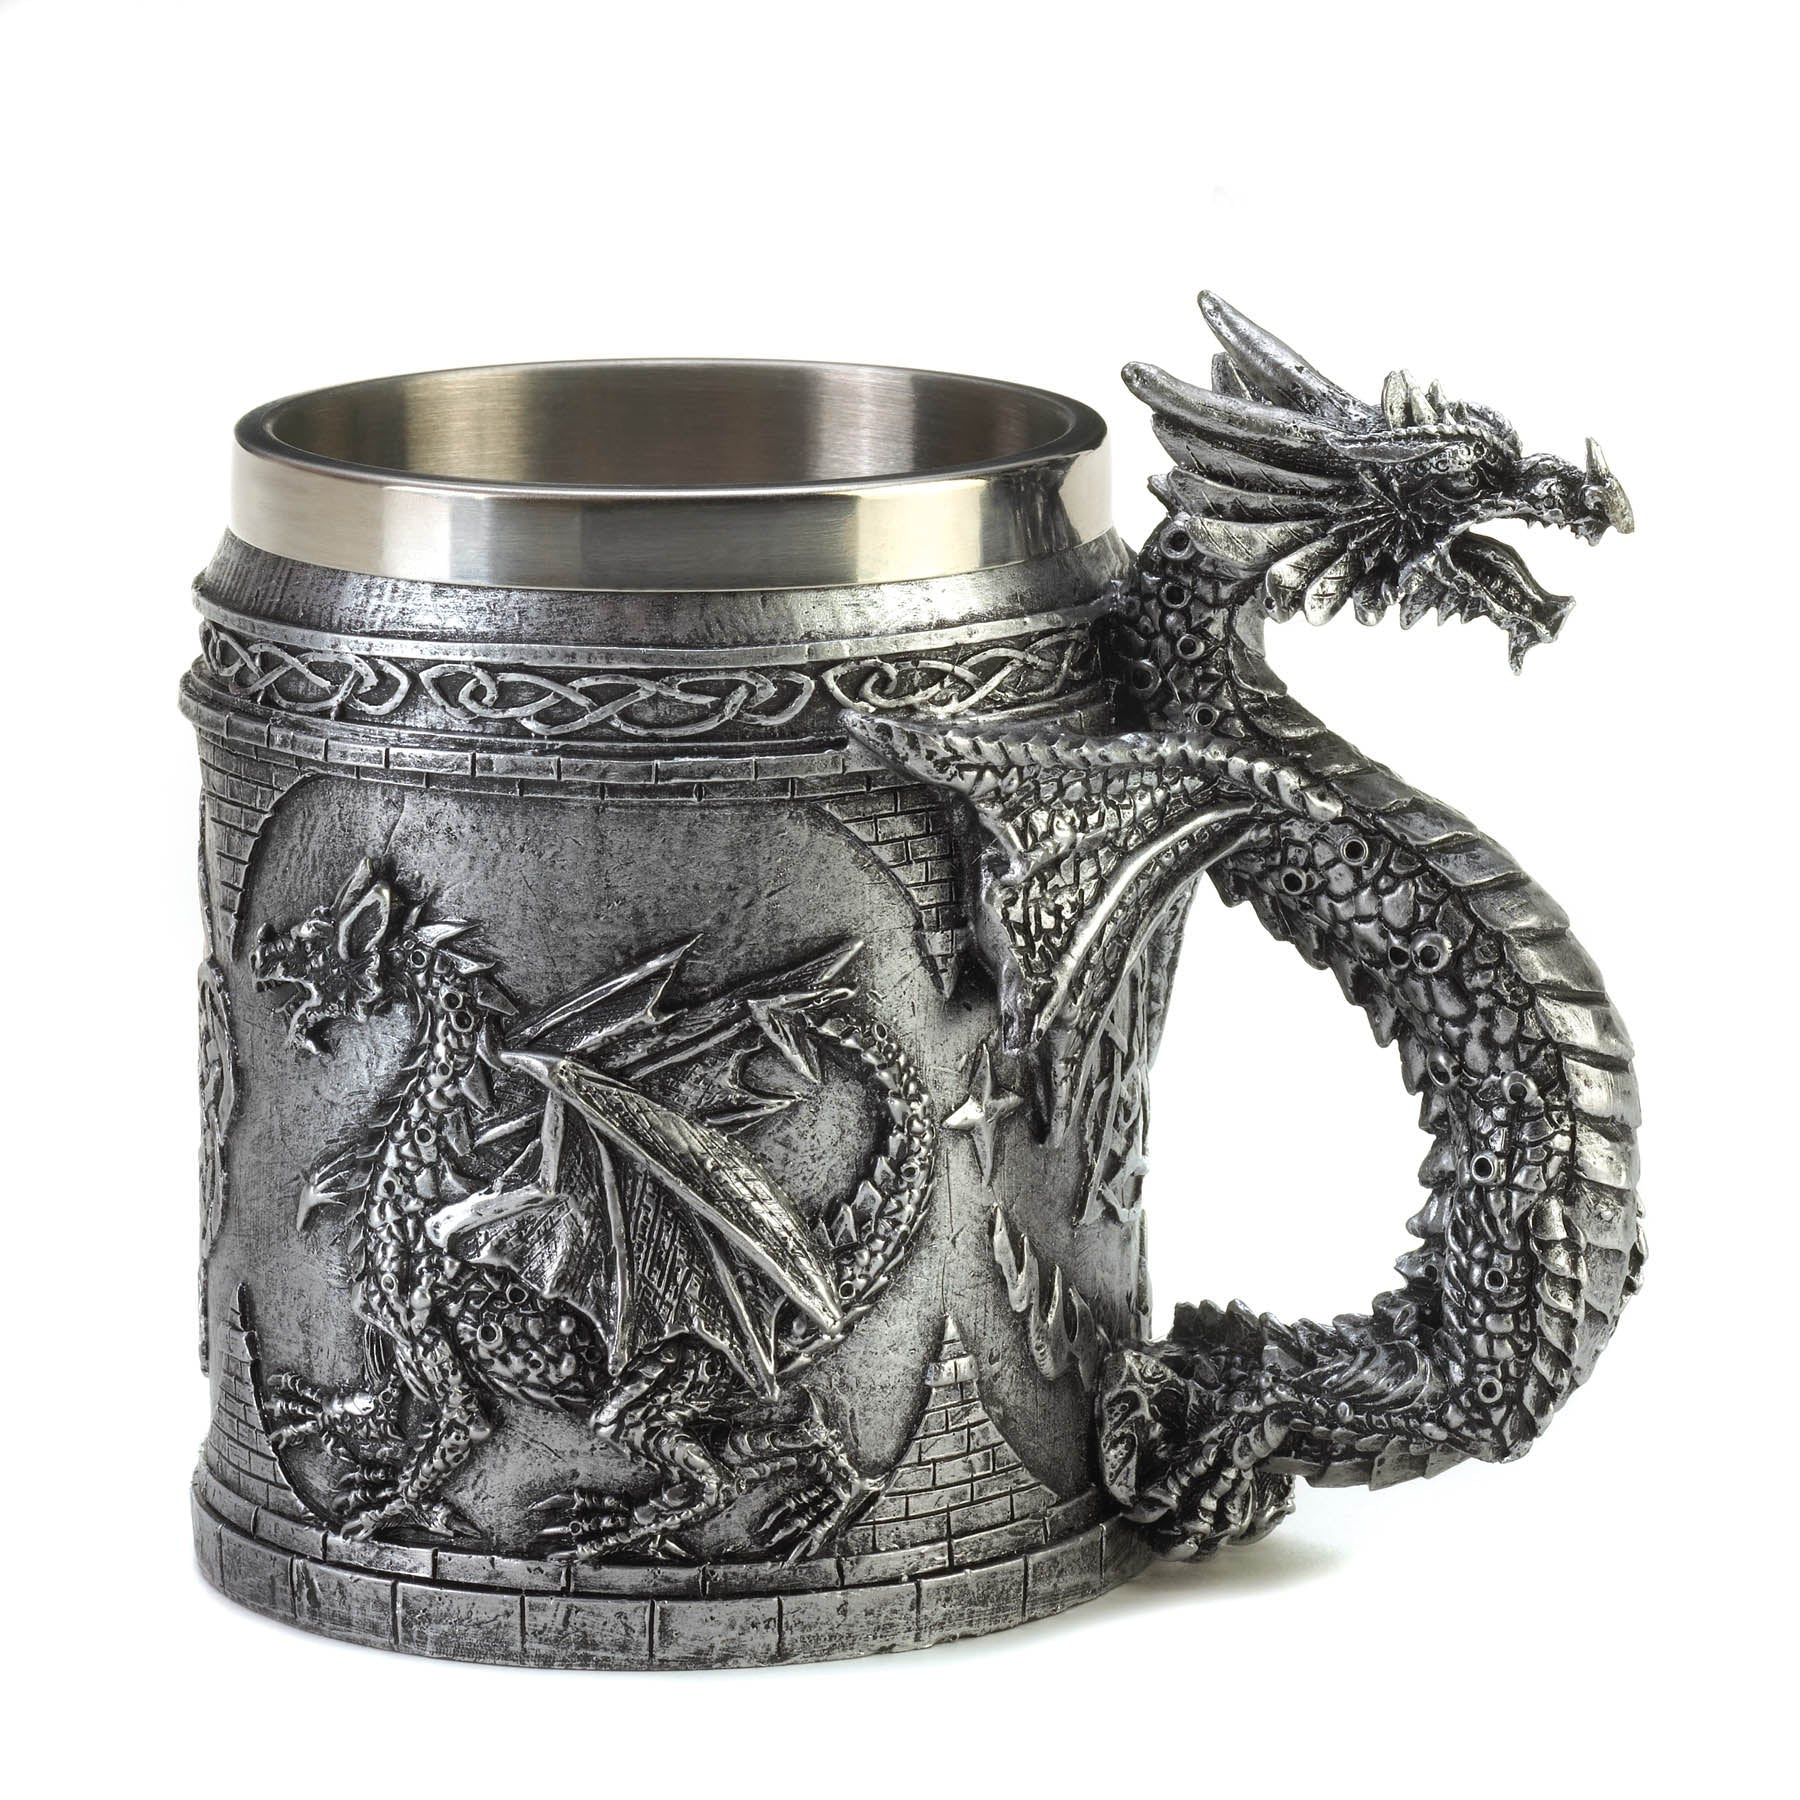 Koolekoo Serpentine Dragon Mug - 15132